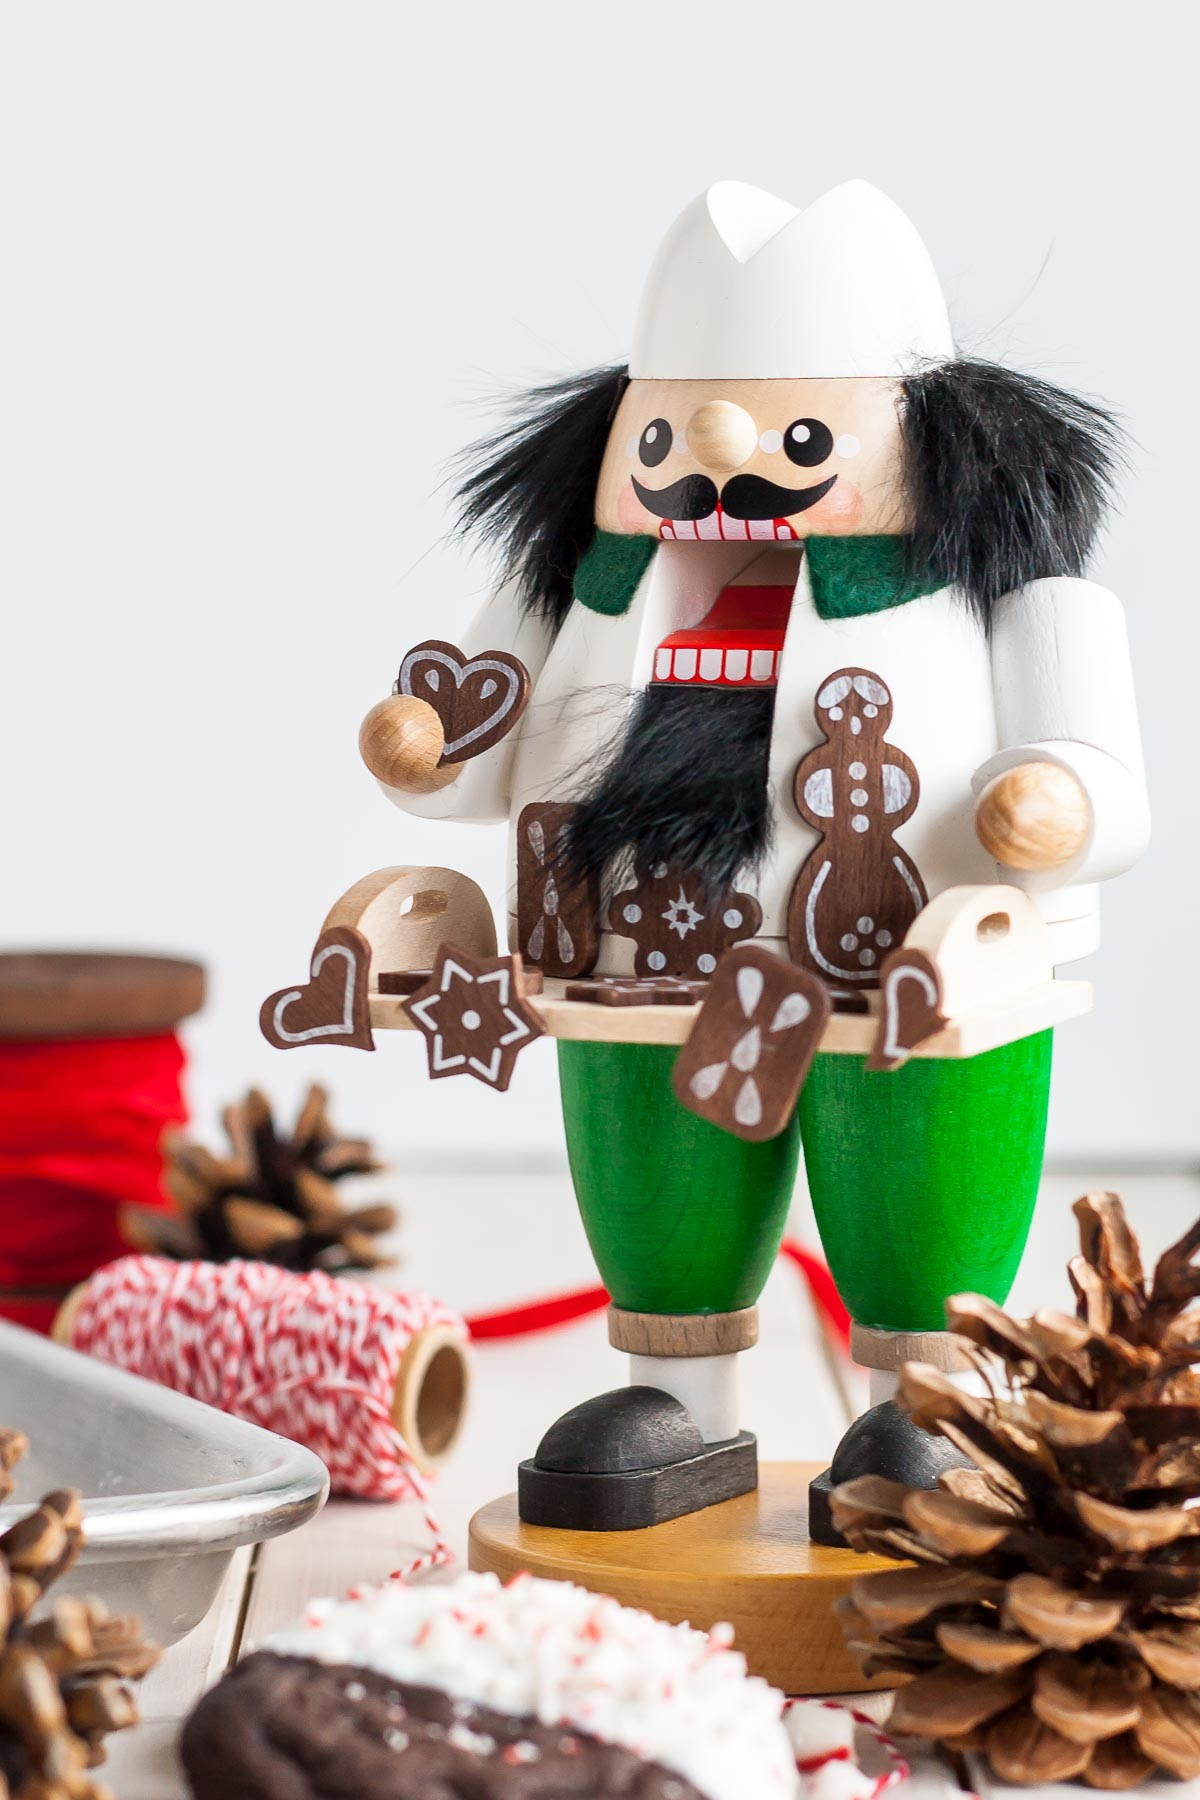 German nutcracker - baker with holiday cookies